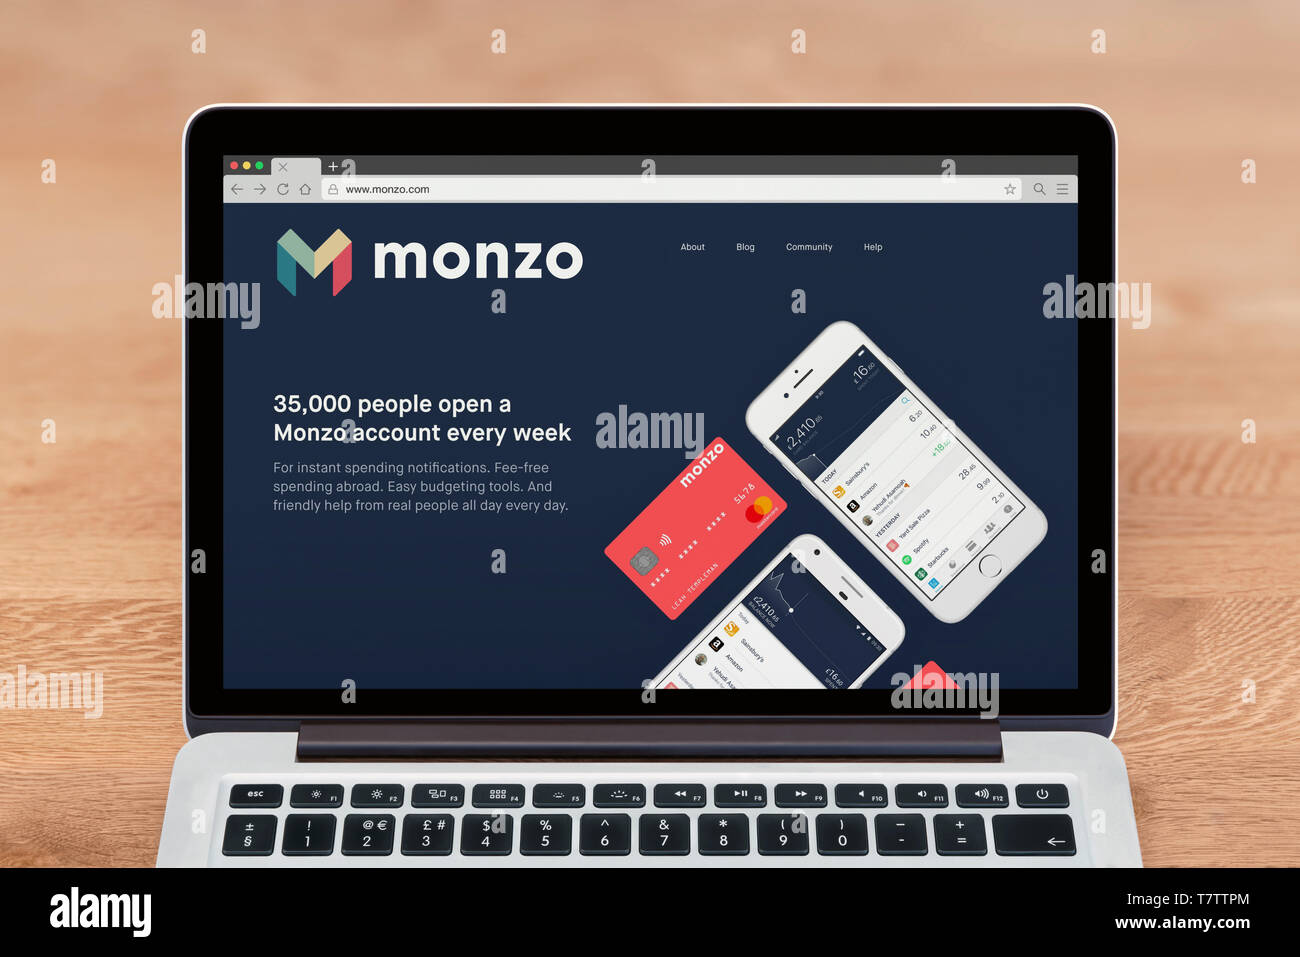 An Apple Macbook displays the Monzo Bank website (Editorial use only). - Stock Image